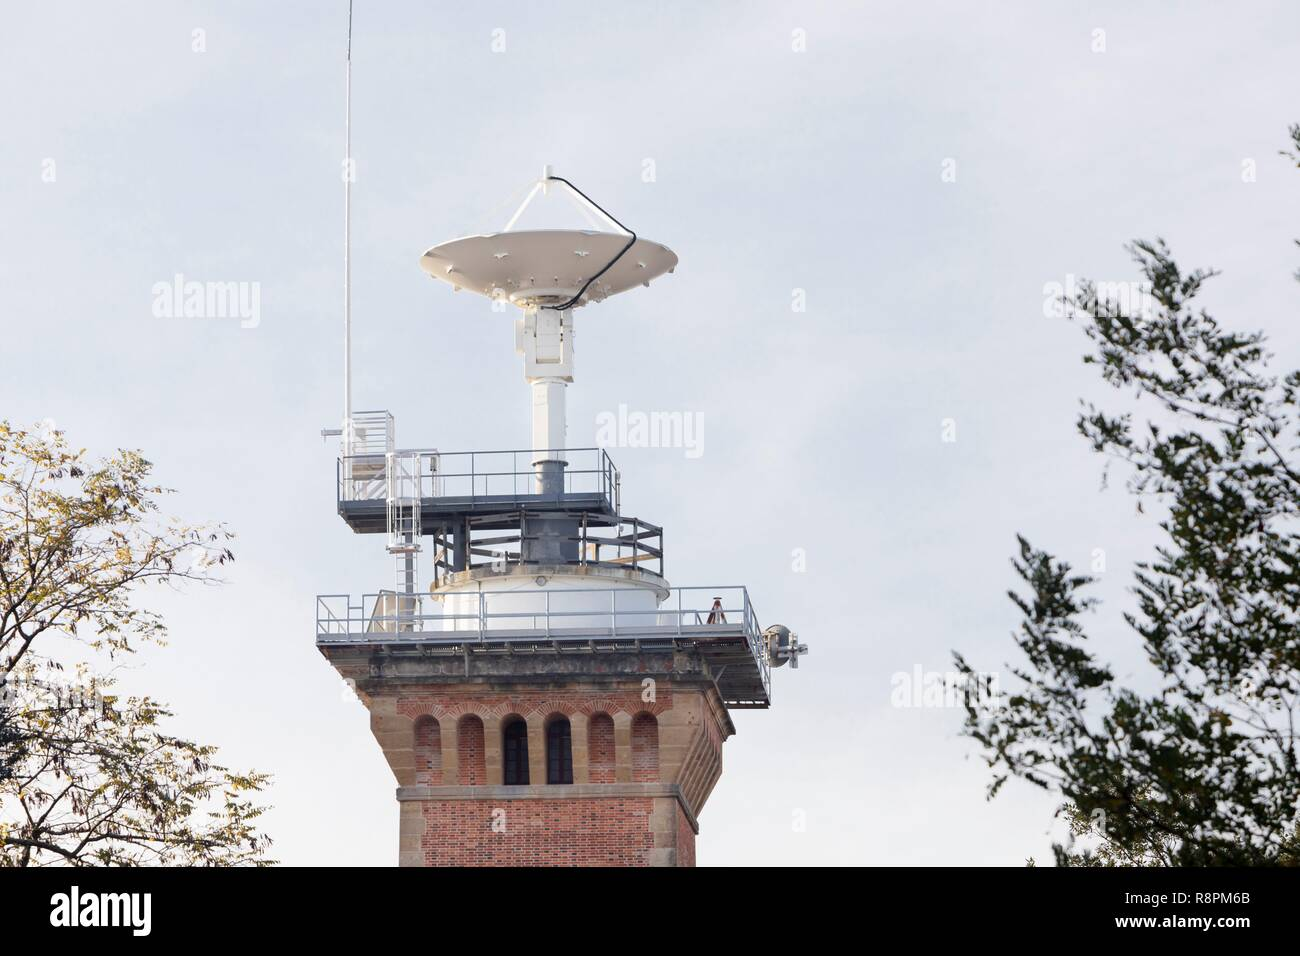 France, Gironde, Hourtin forest, Hourtin, The old Hourtin lighthouse that was transformed for an army usage - Stock Image